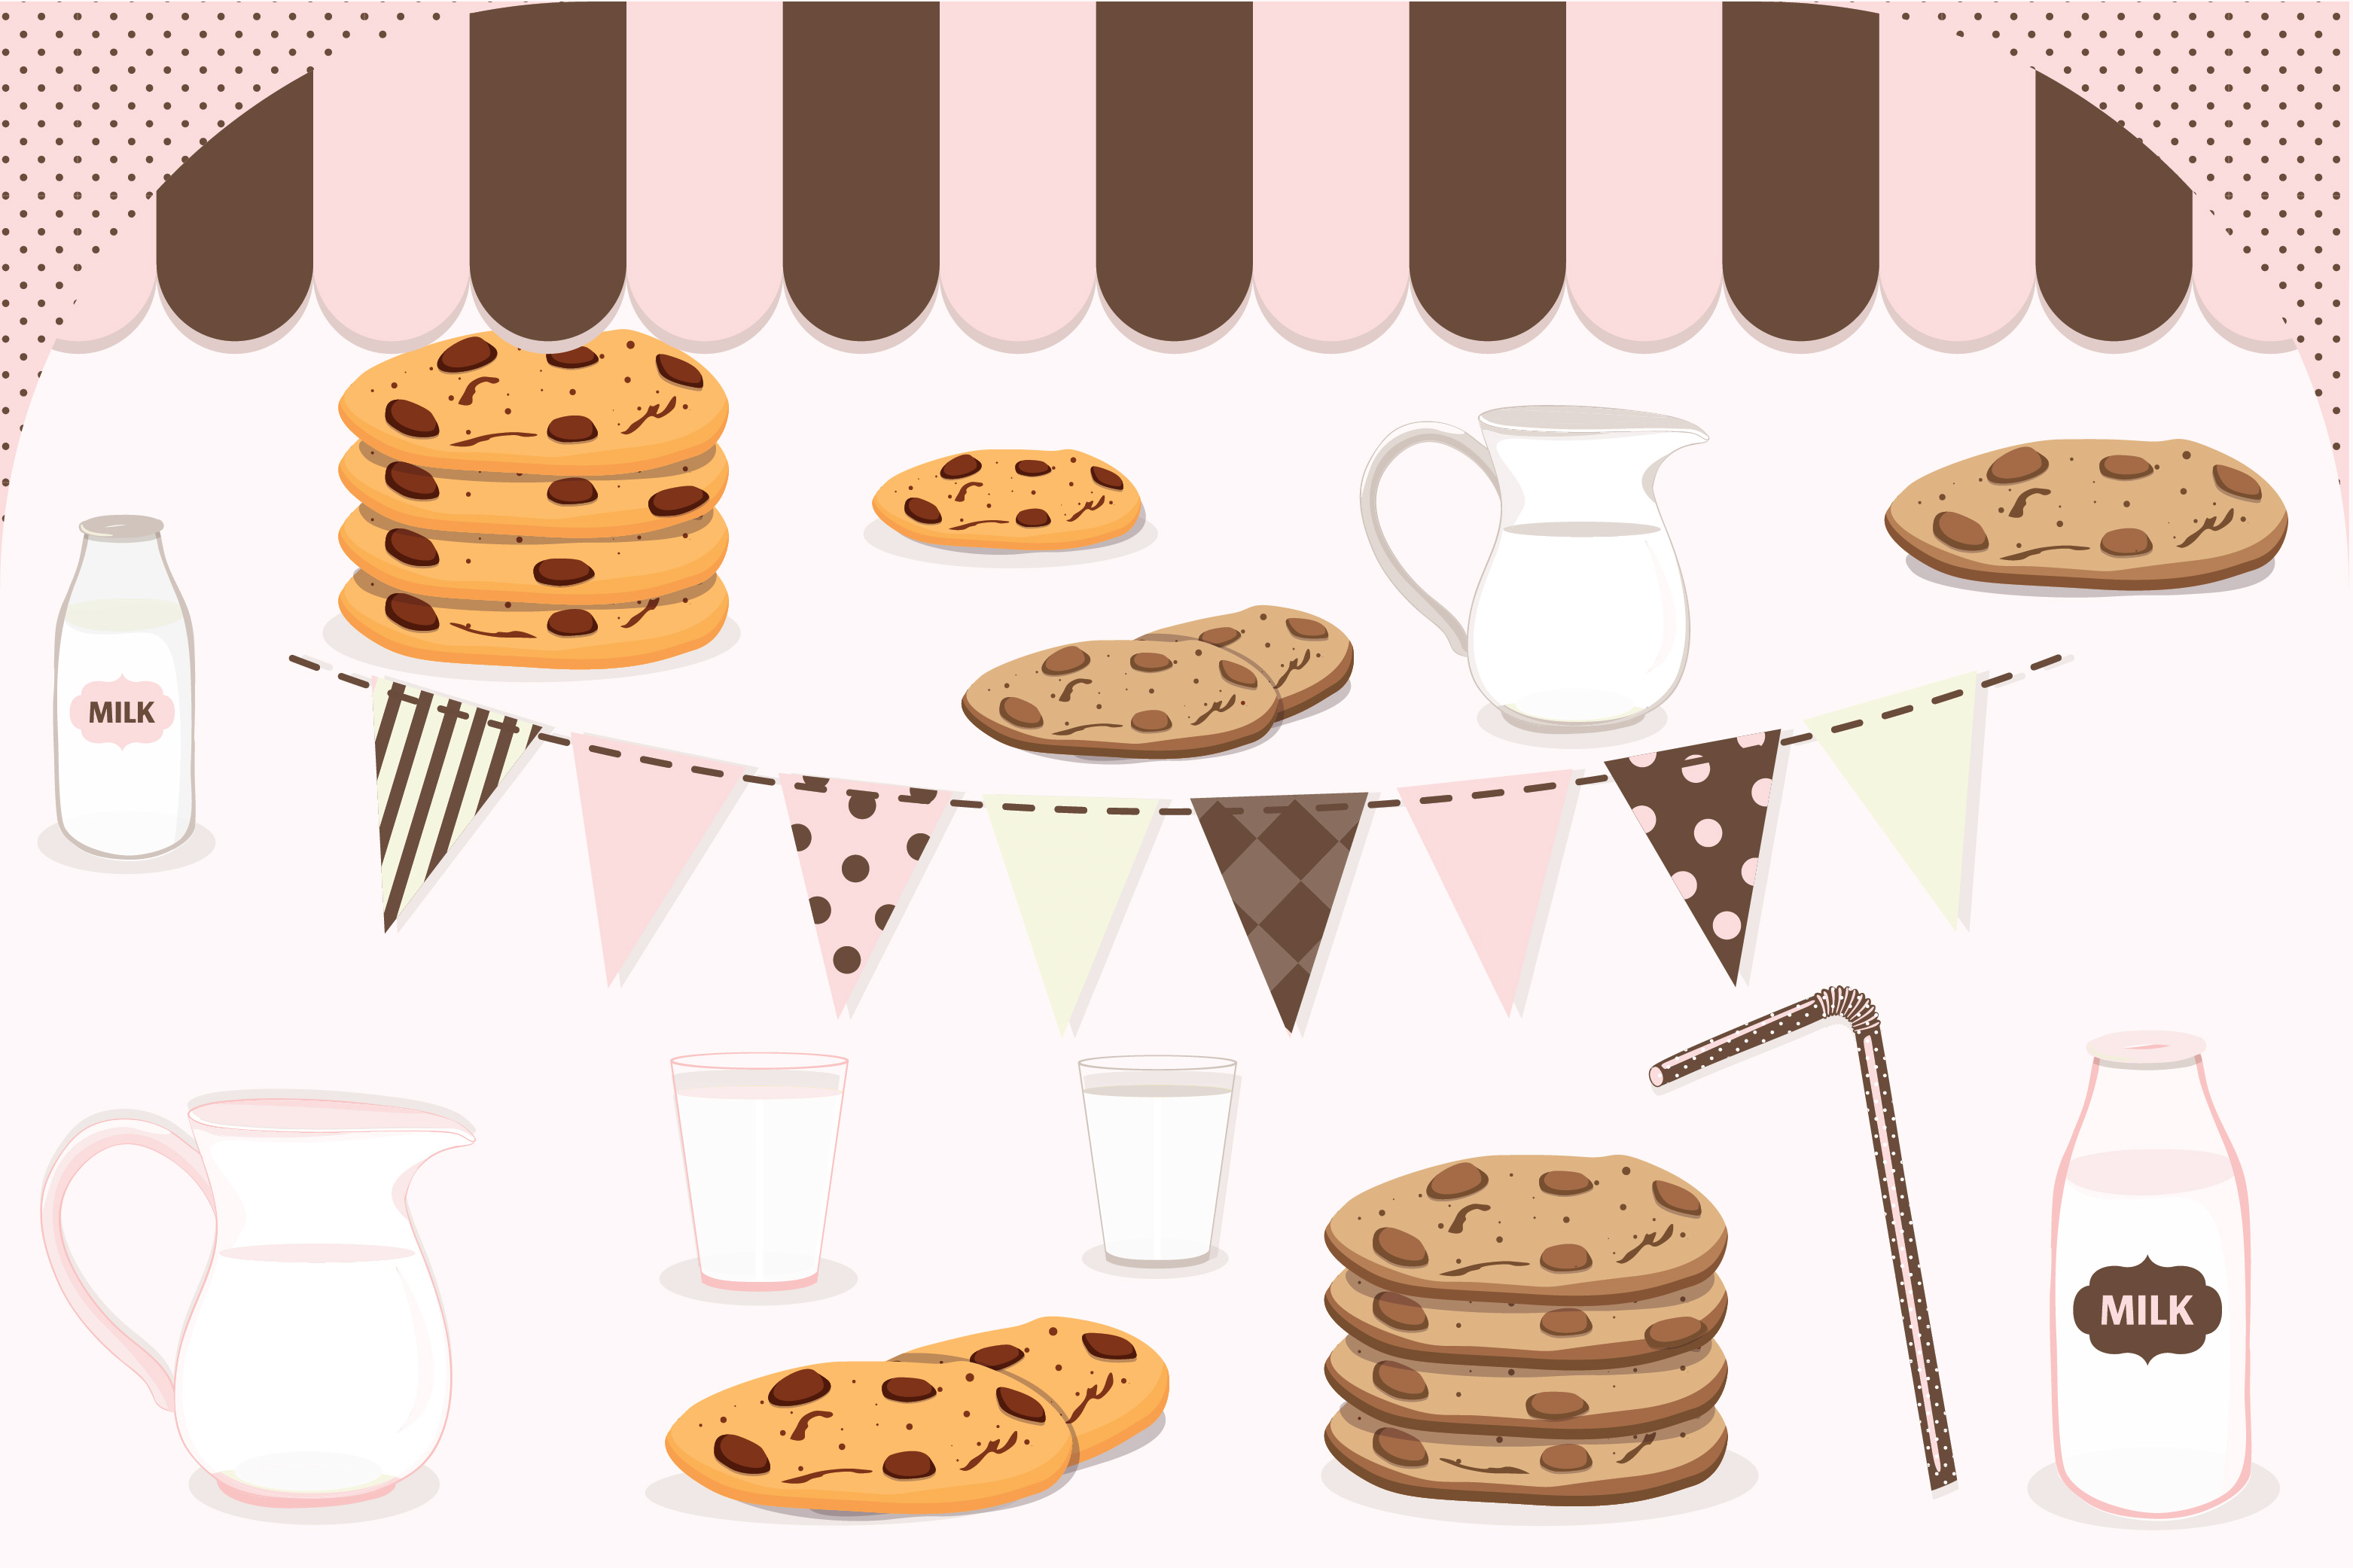 Milk and cookies clipart, Milk and cookies graphics.